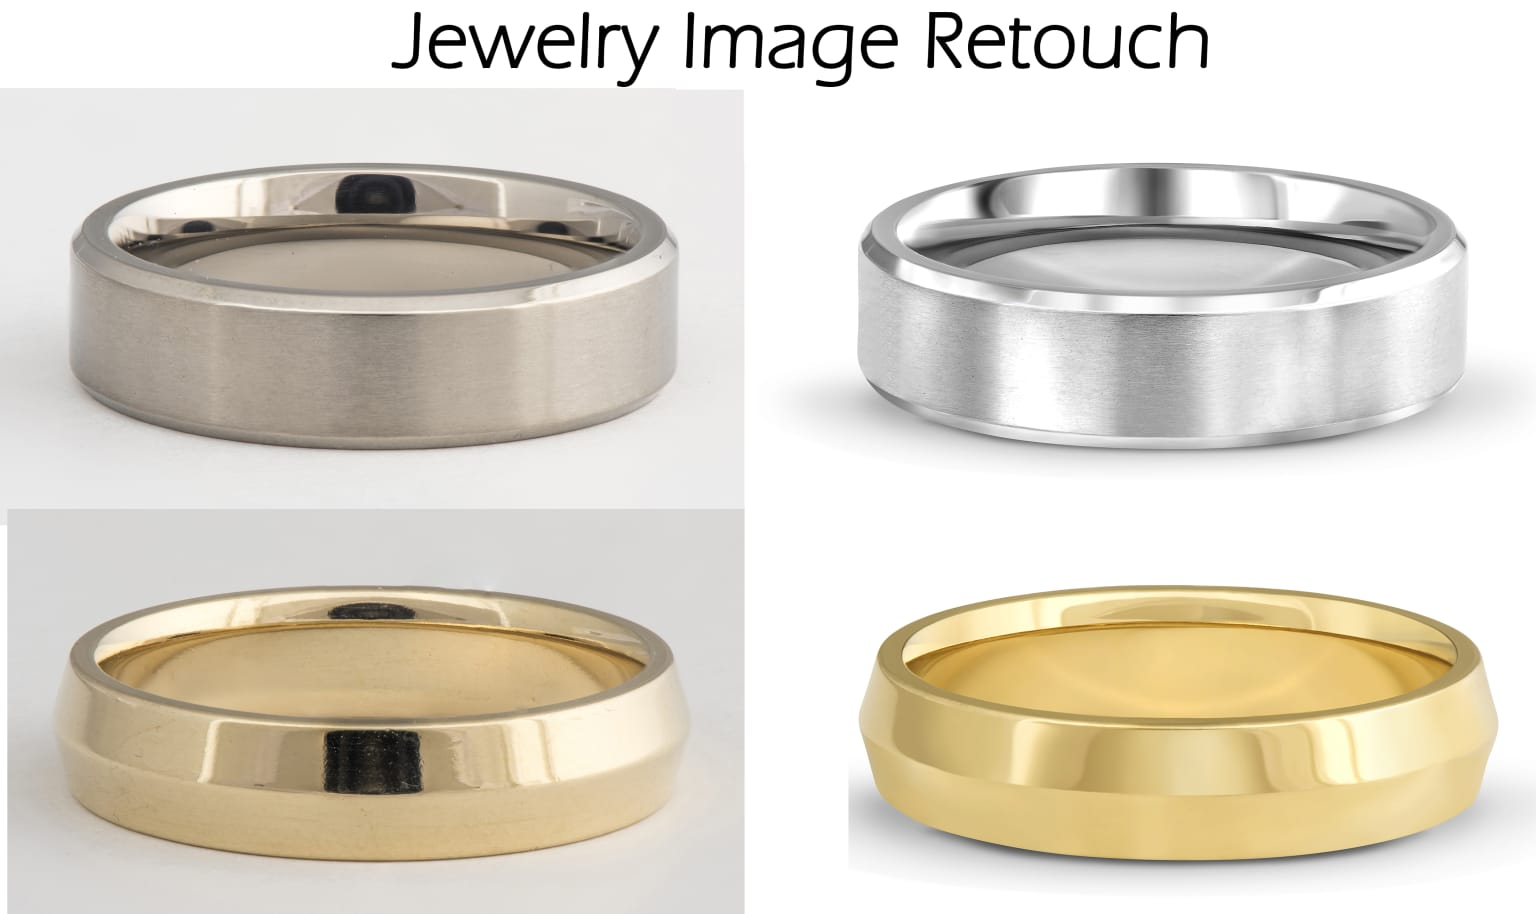 Jewelry Image Retouch and Editing